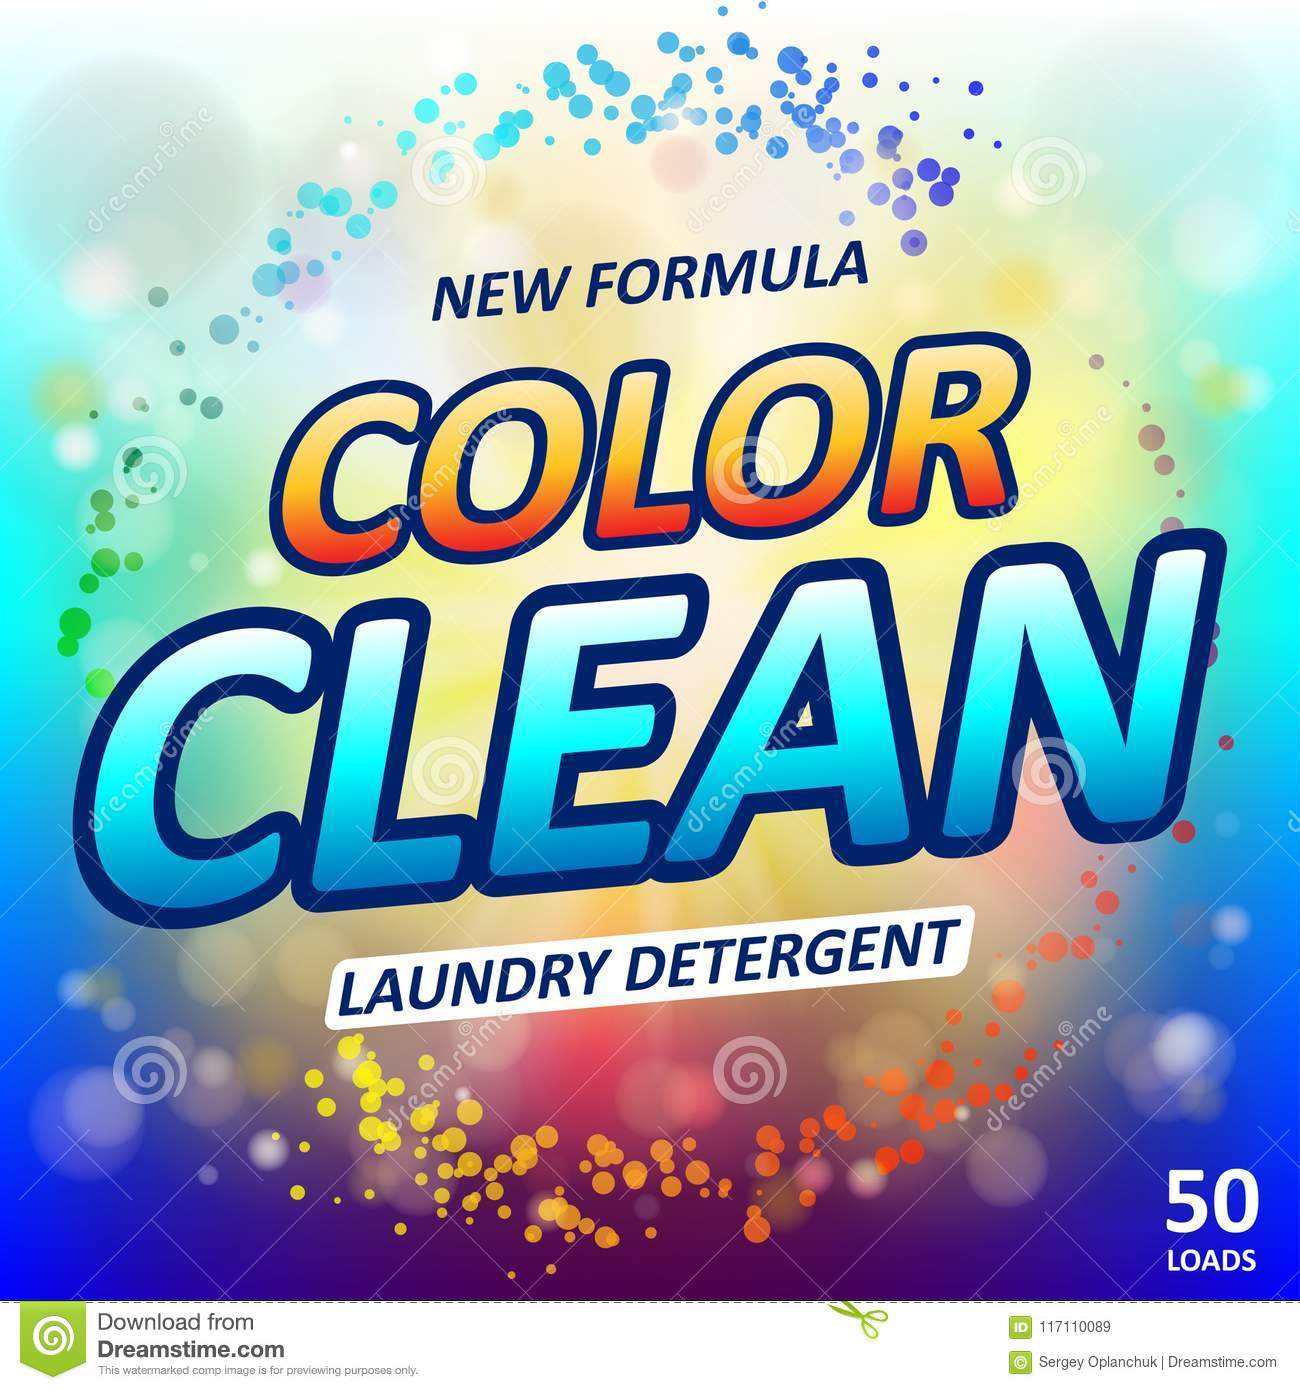 Laundry Detergent Package Ads Toilet Or Bathroom Tub Cleanser - Bathroom detergent